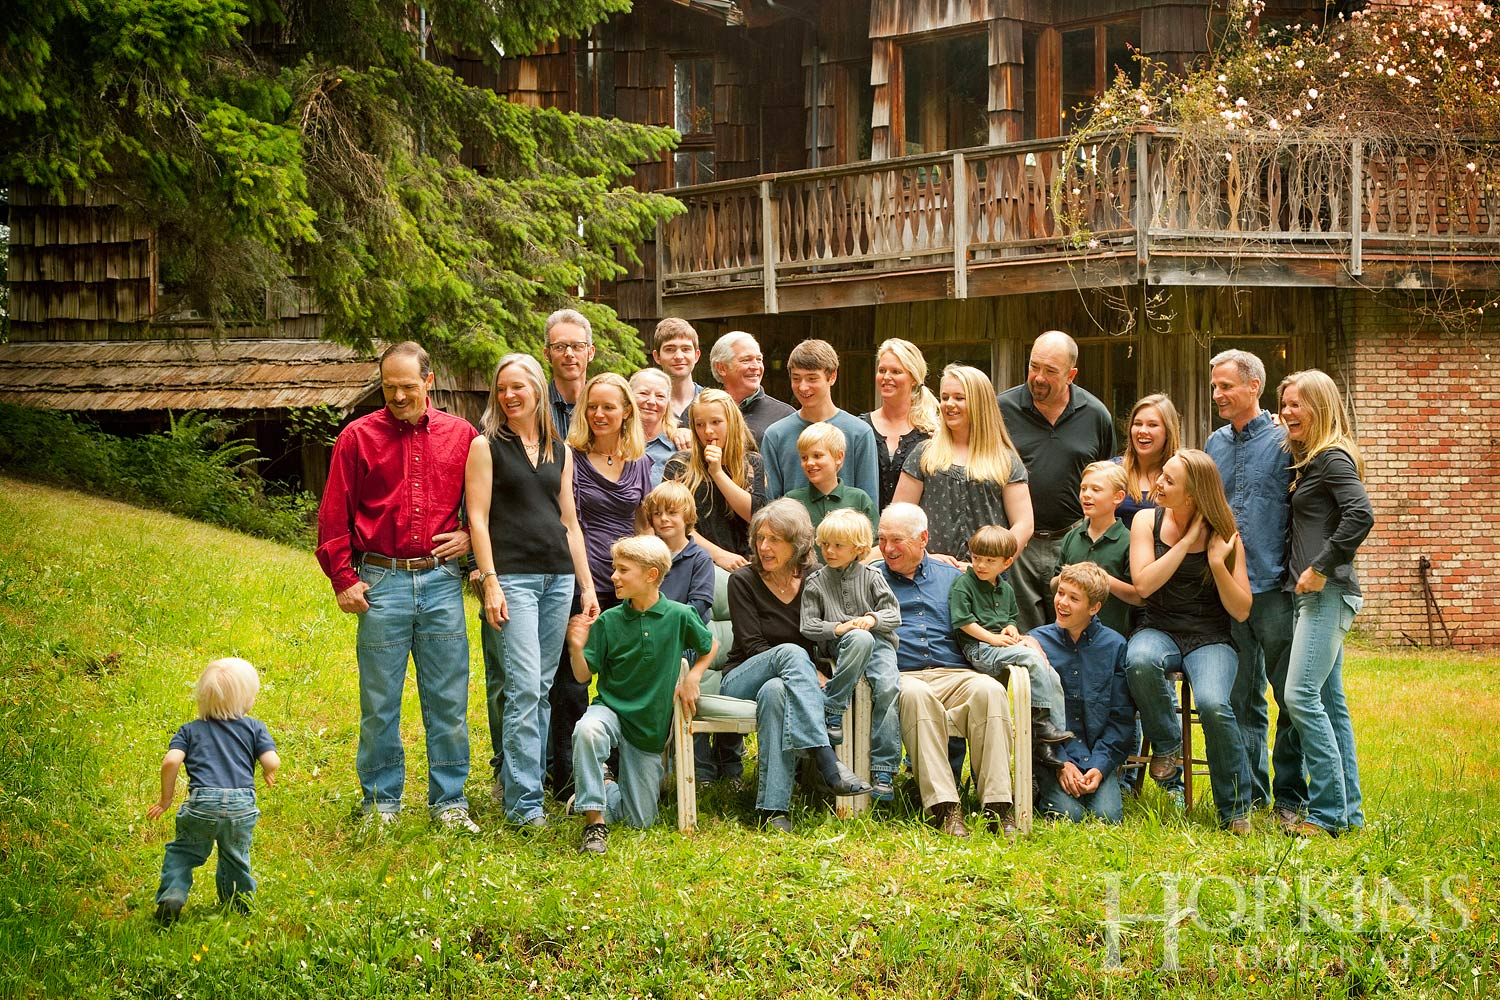 grobey_family_portraiture_location_photography.jpg